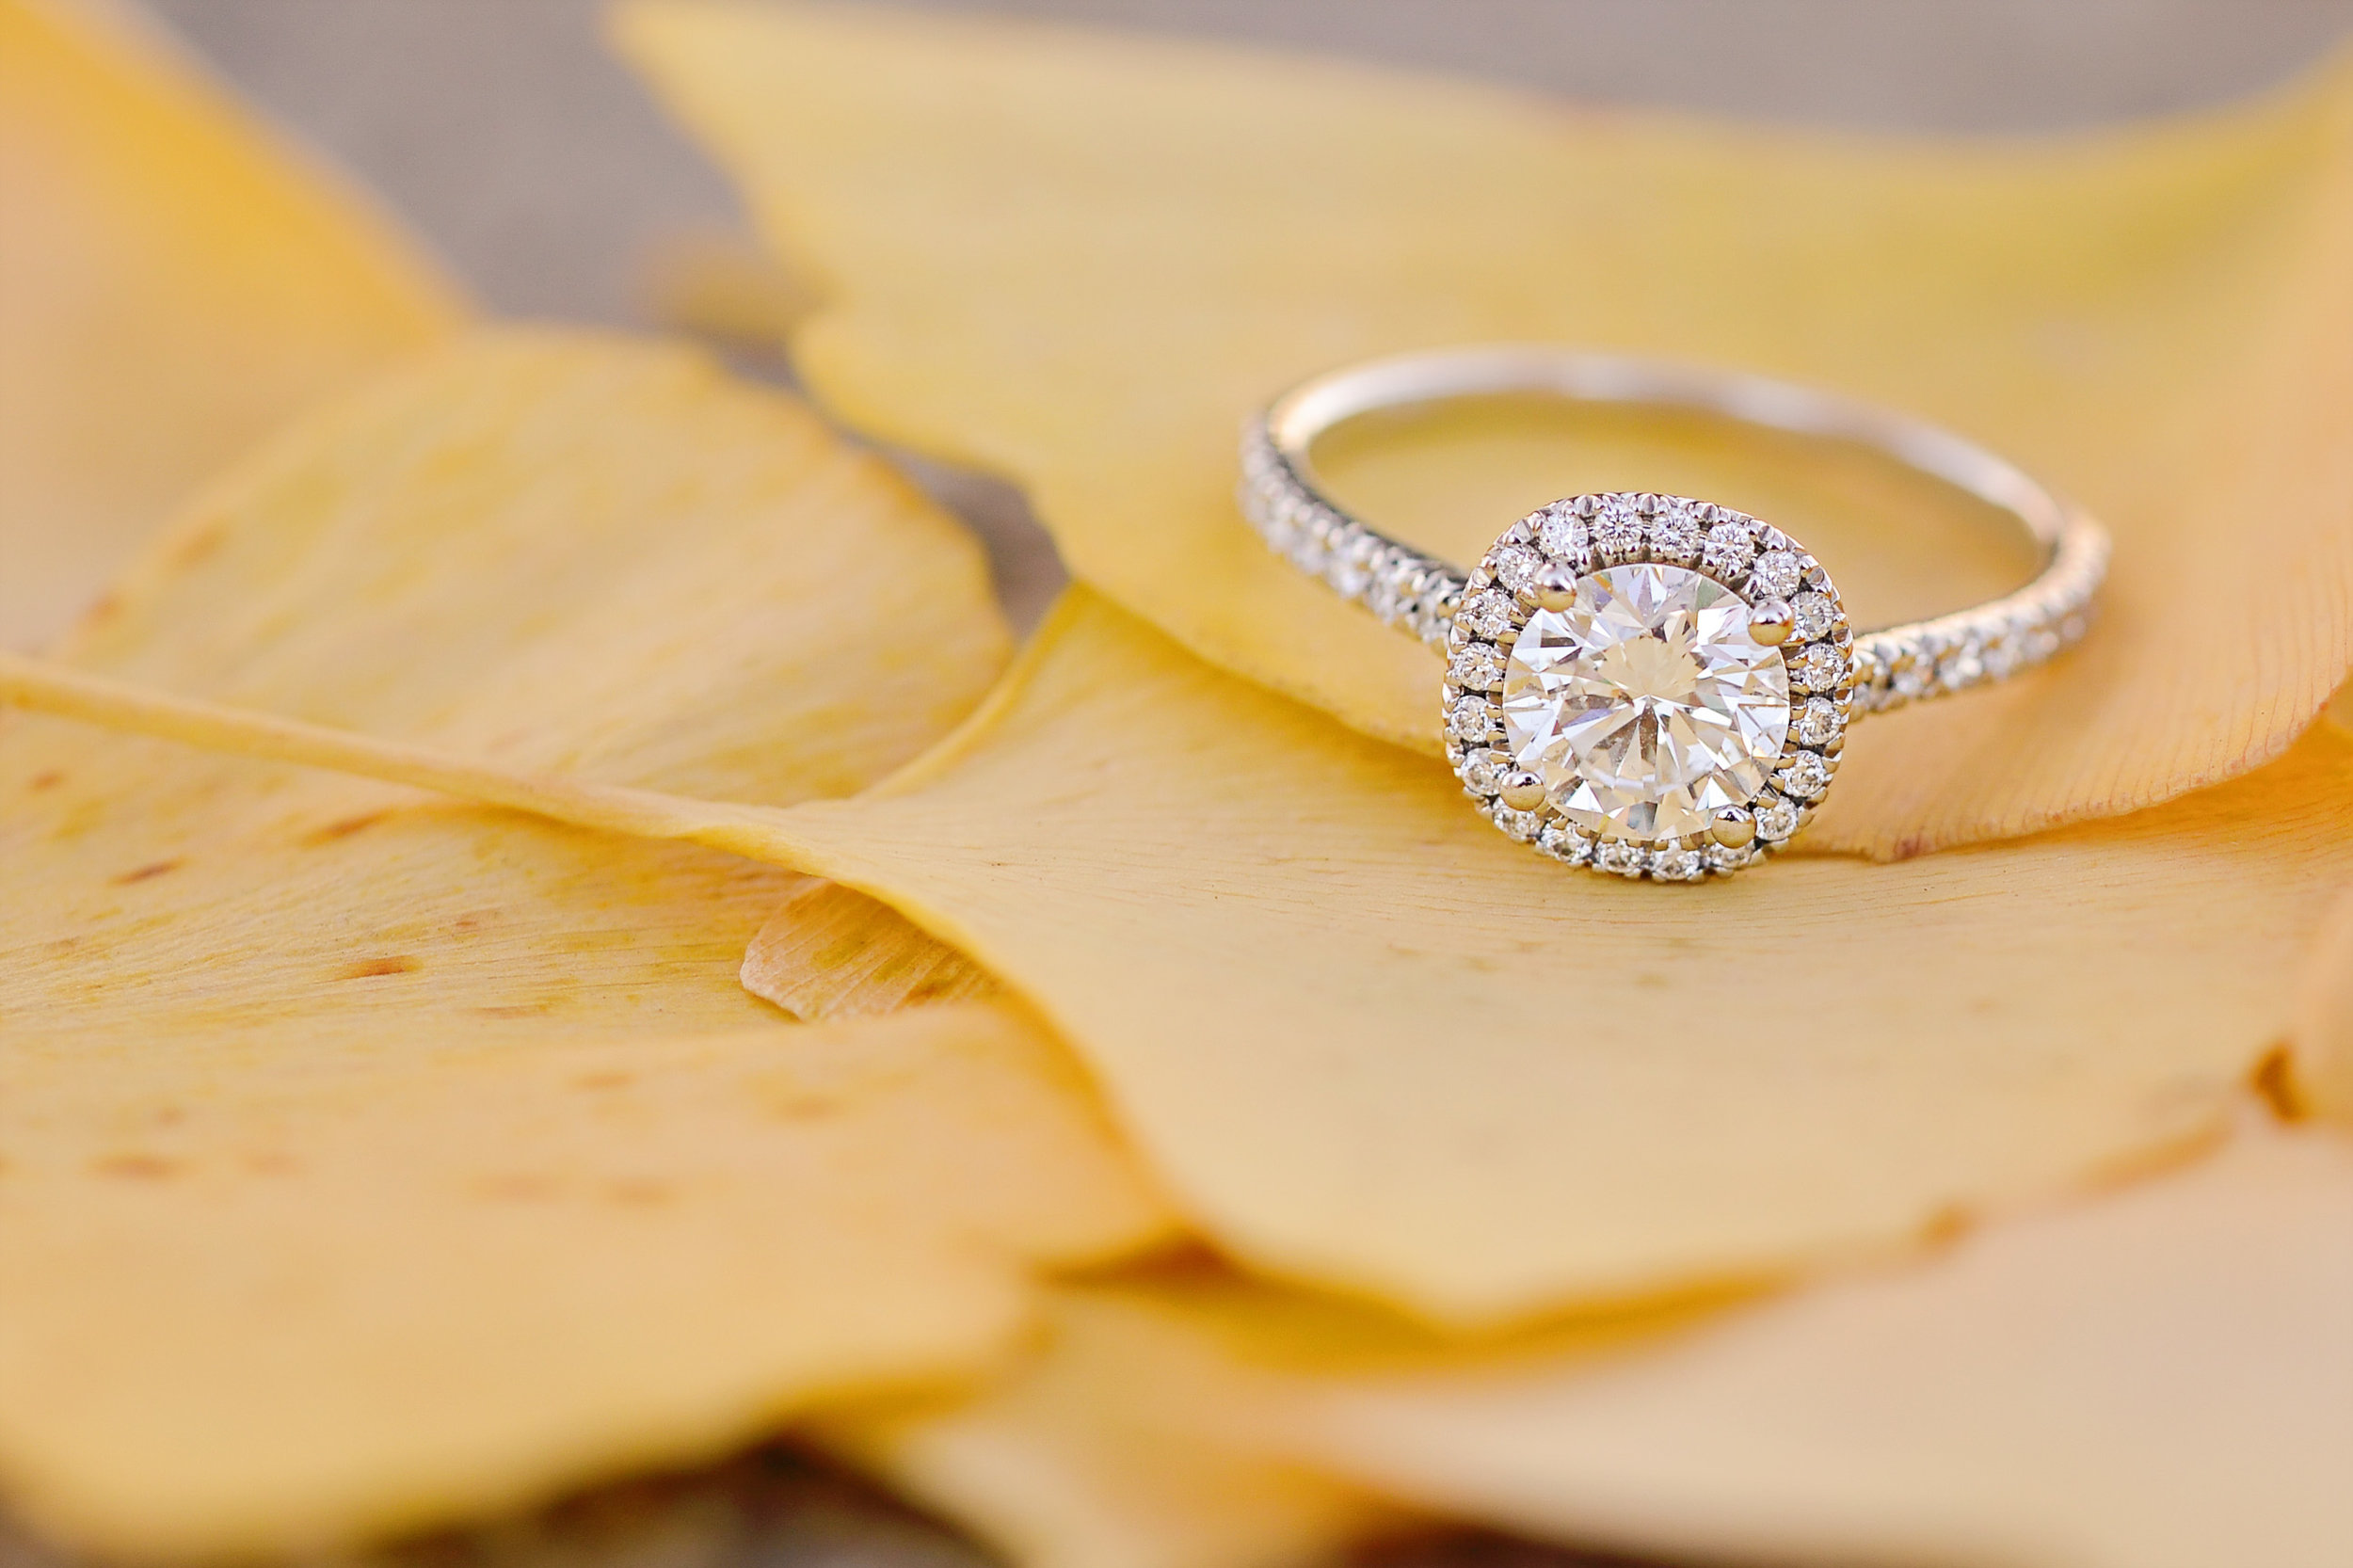 diamond engagement ring on yellow leaves in houston texas photo.jpeg